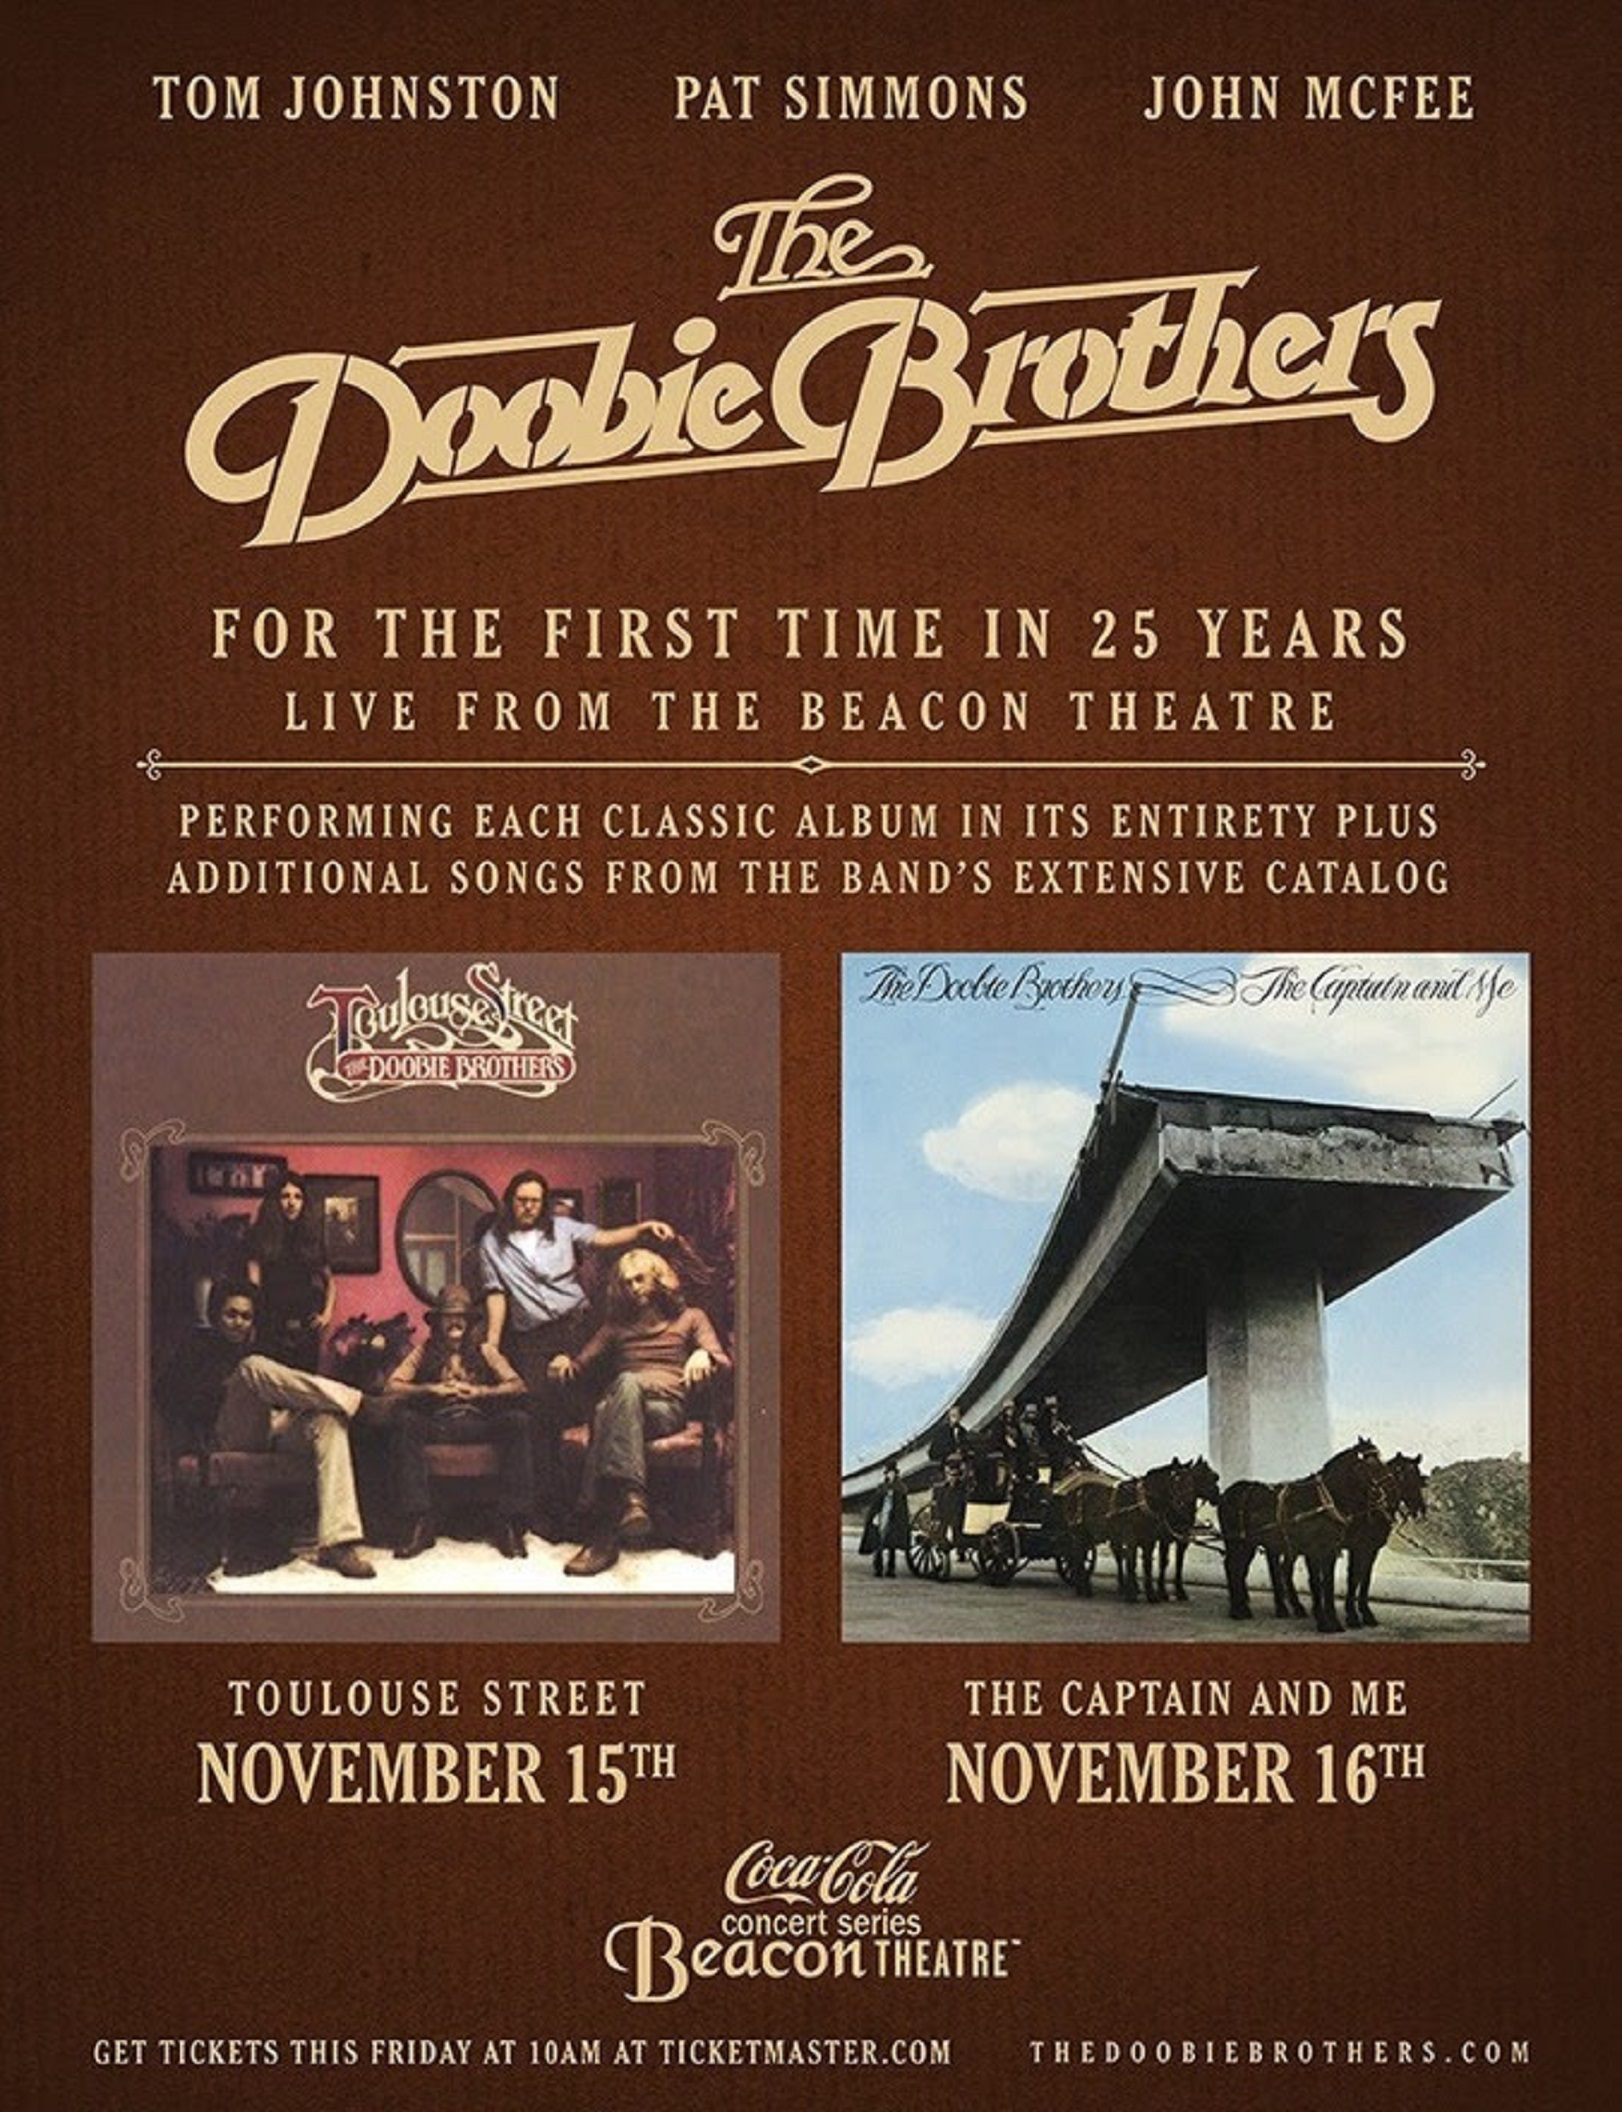 The Doobie Brothers Announce Historic Full-Album Performances